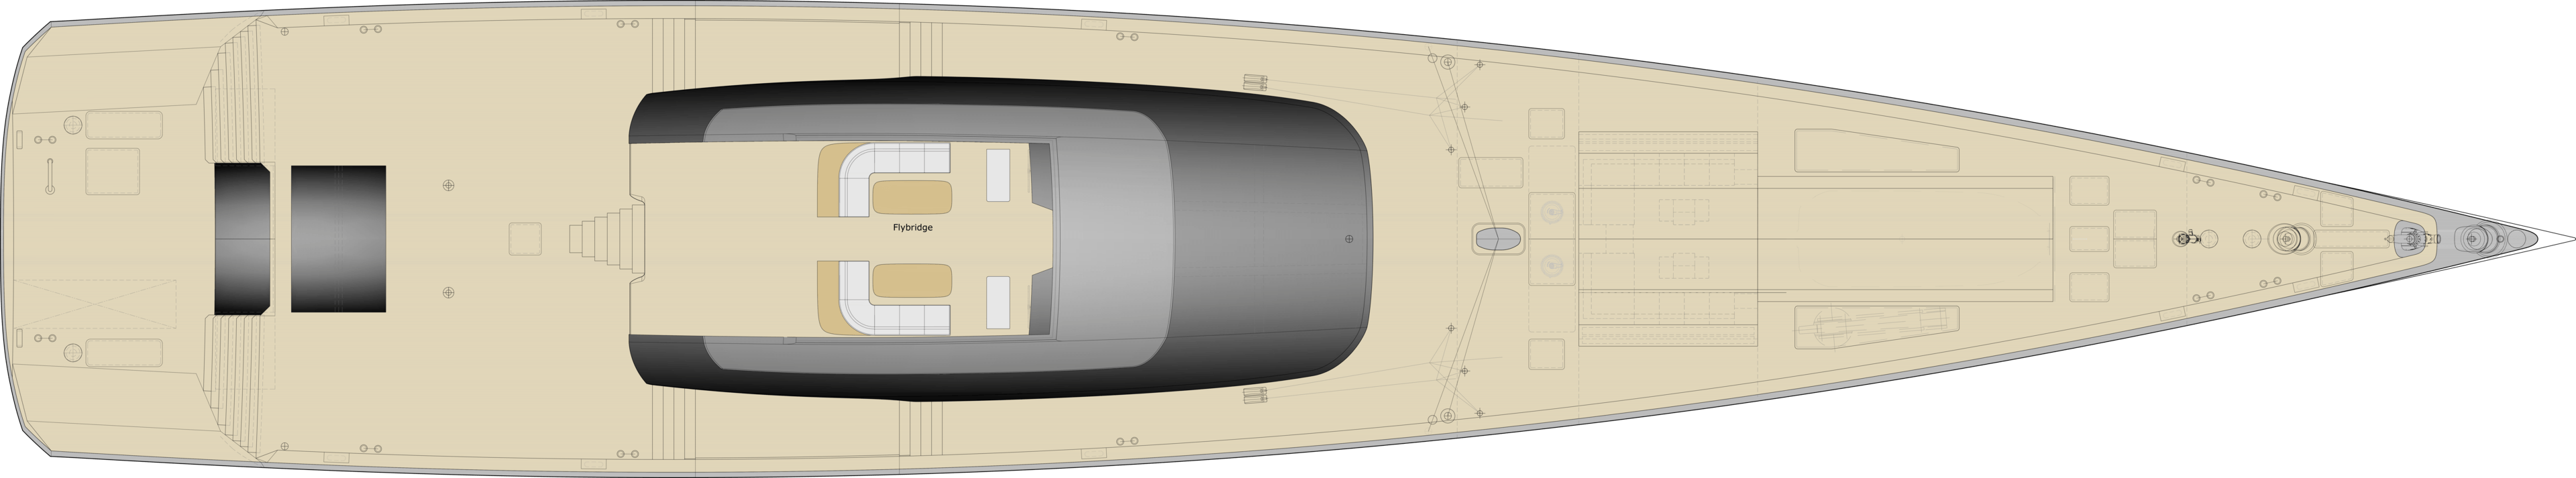 MMYD_055_72.5m_A_Deck Plan_C.png